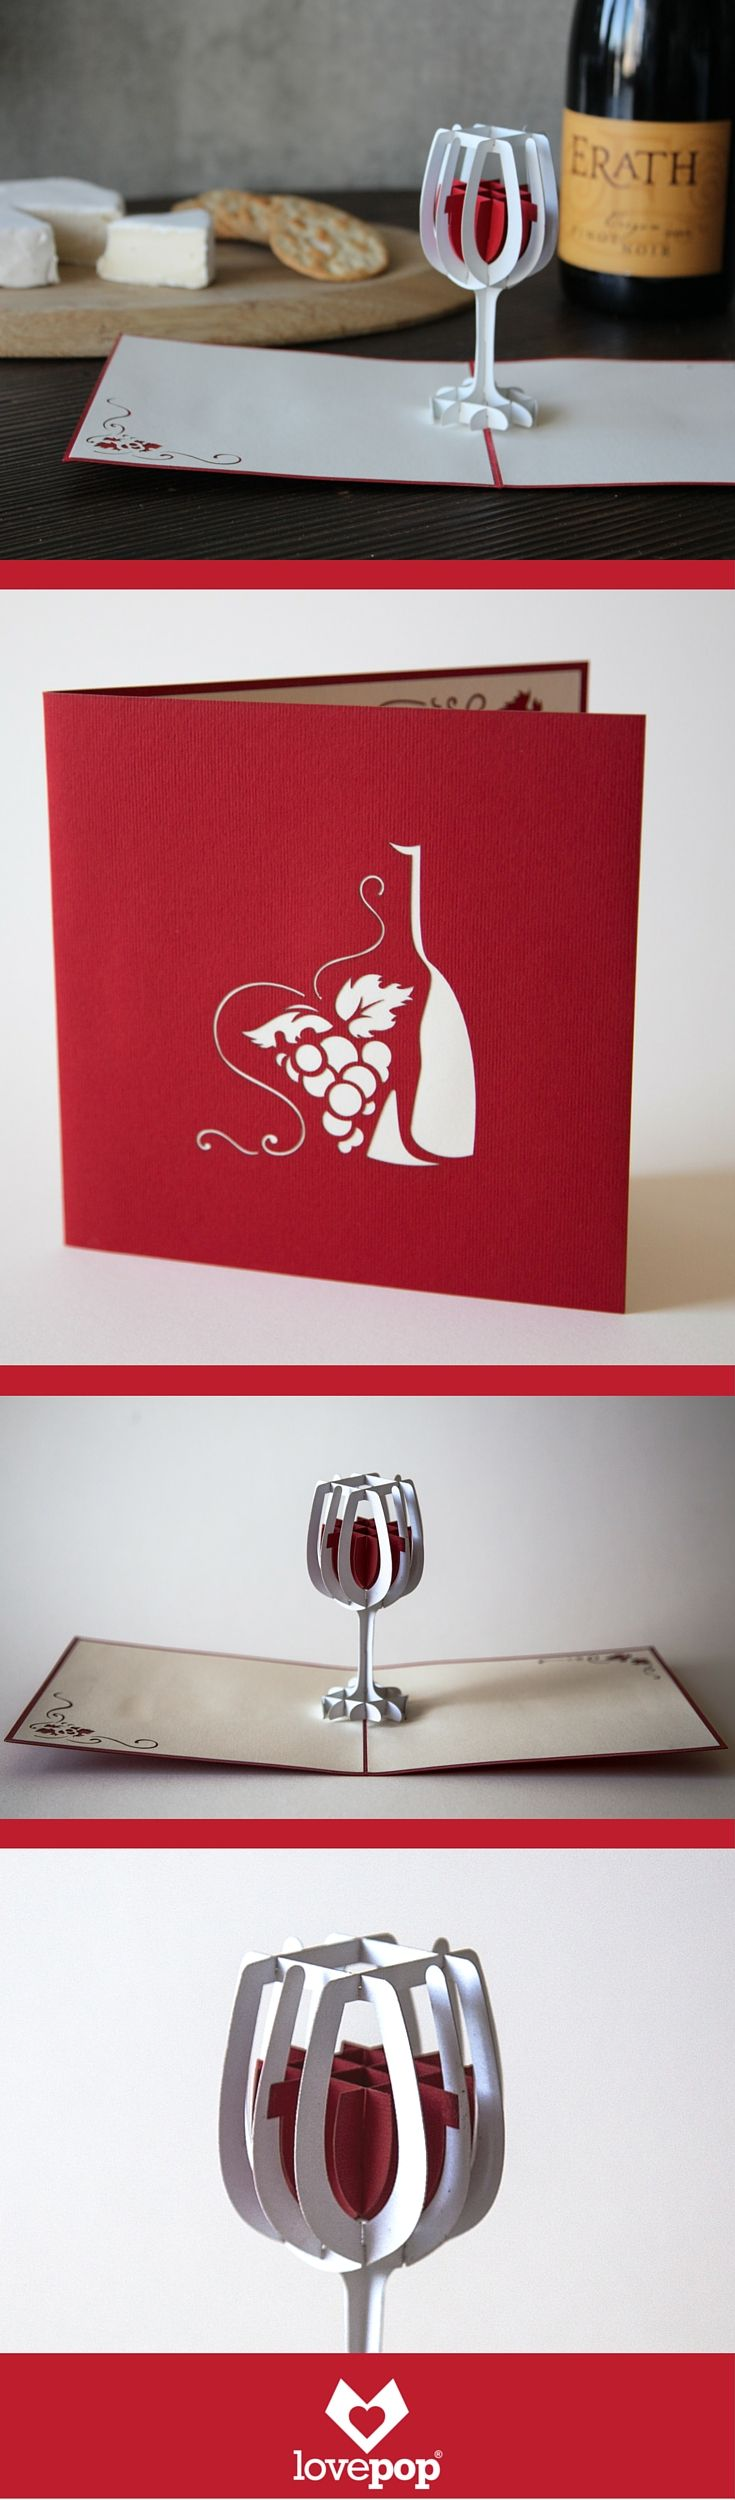 170 Best Pop Up Cards Images On Pinterest Creative Ideas Homemade